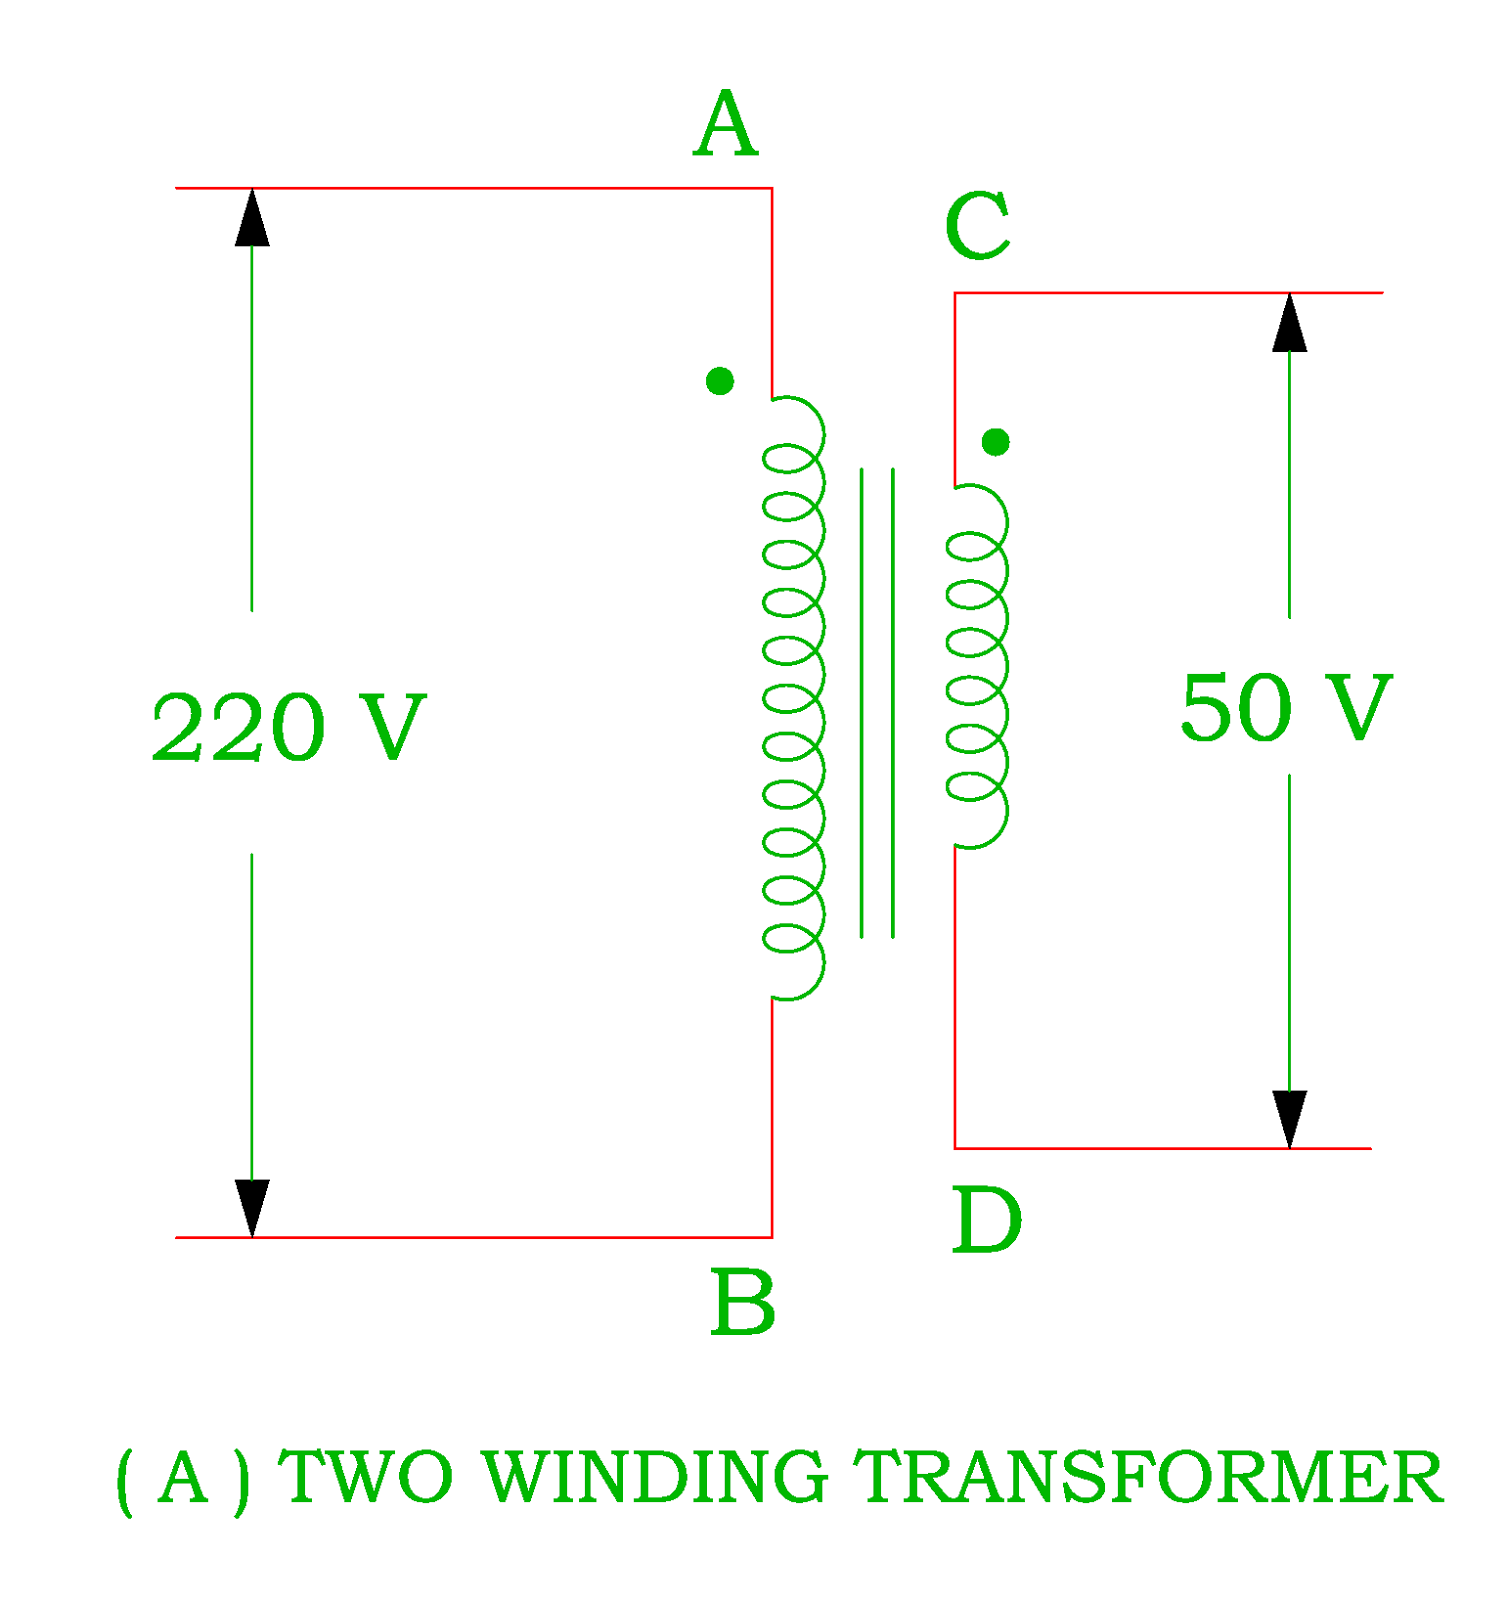 Working of Auto transformer, Saving in Copper Material and